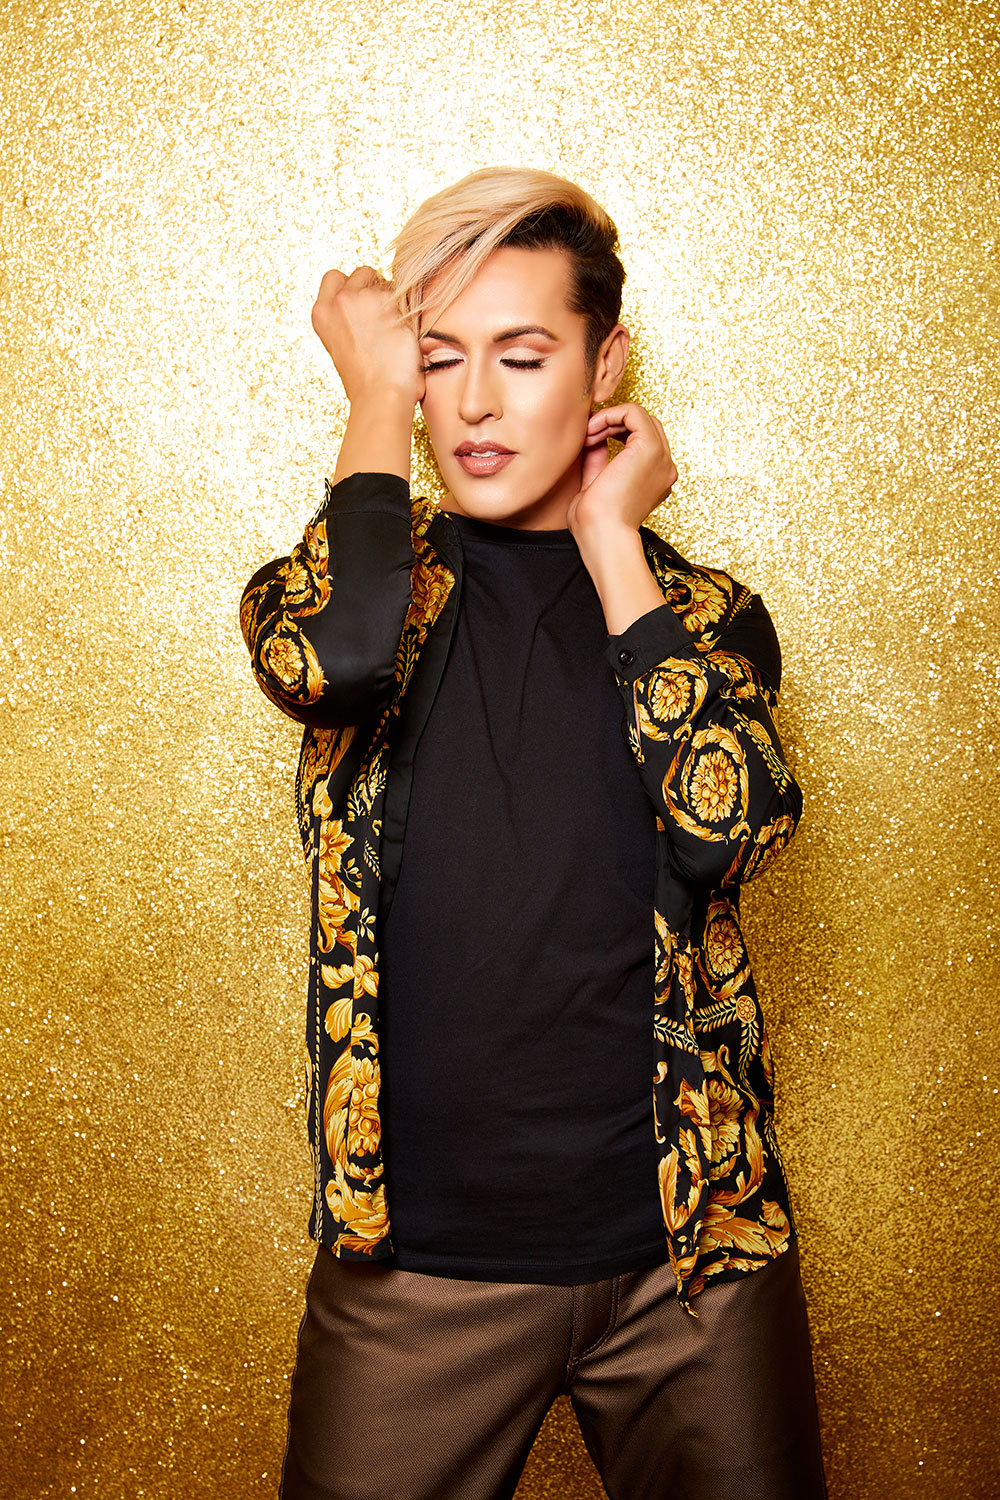 Dario wearing gold embroidered jacket, standing in front of golden glitter with hands up to face